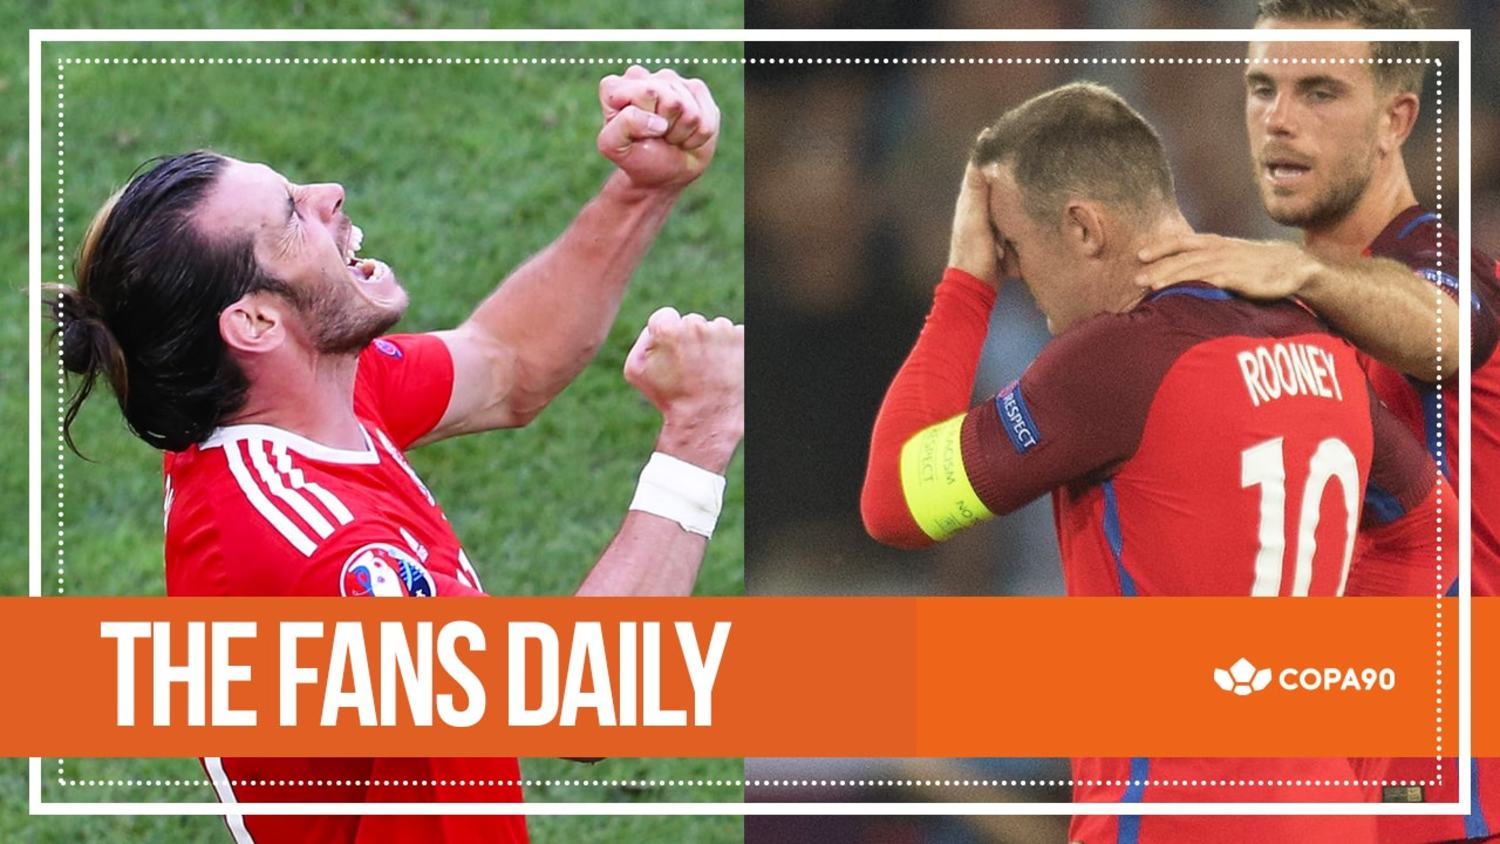 Bale's On Fire, England Team Just Qualified | The Fans Daily